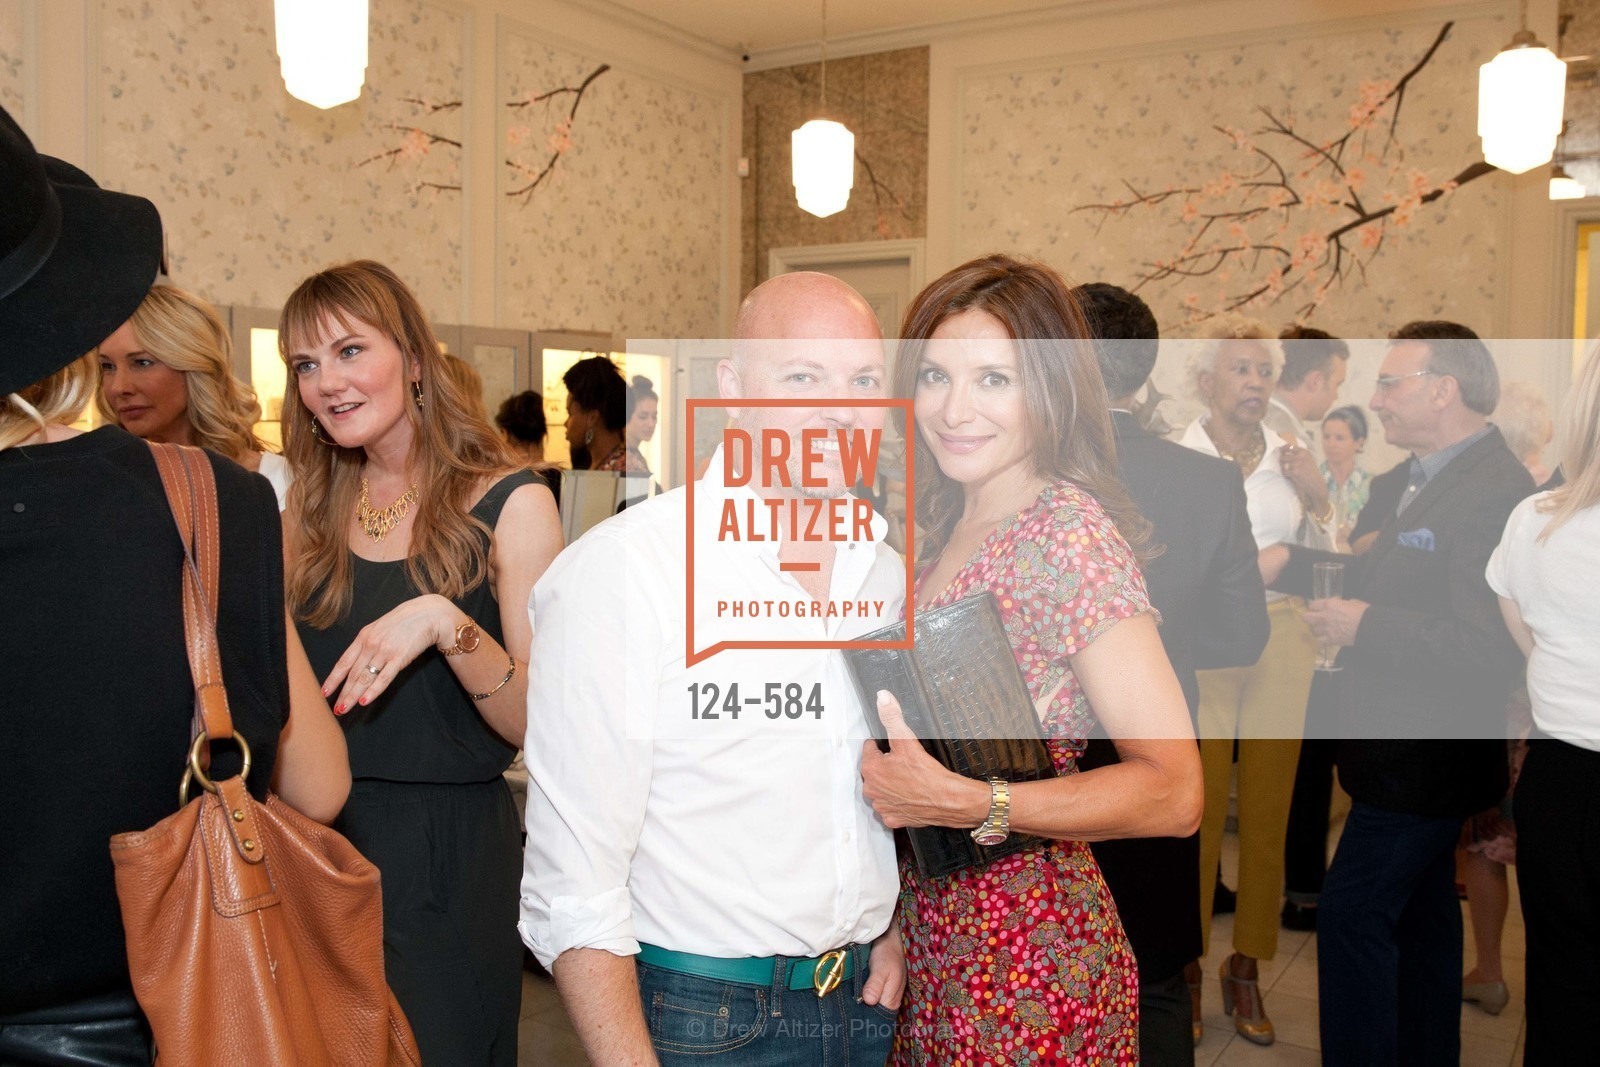 David Nash, Claudia Ross, 141001-AlexisBittar-correct, US, October 1st, 2014,Drew Altizer, Drew Altizer Photography, full-service agency, private events, San Francisco photographer, photographer california